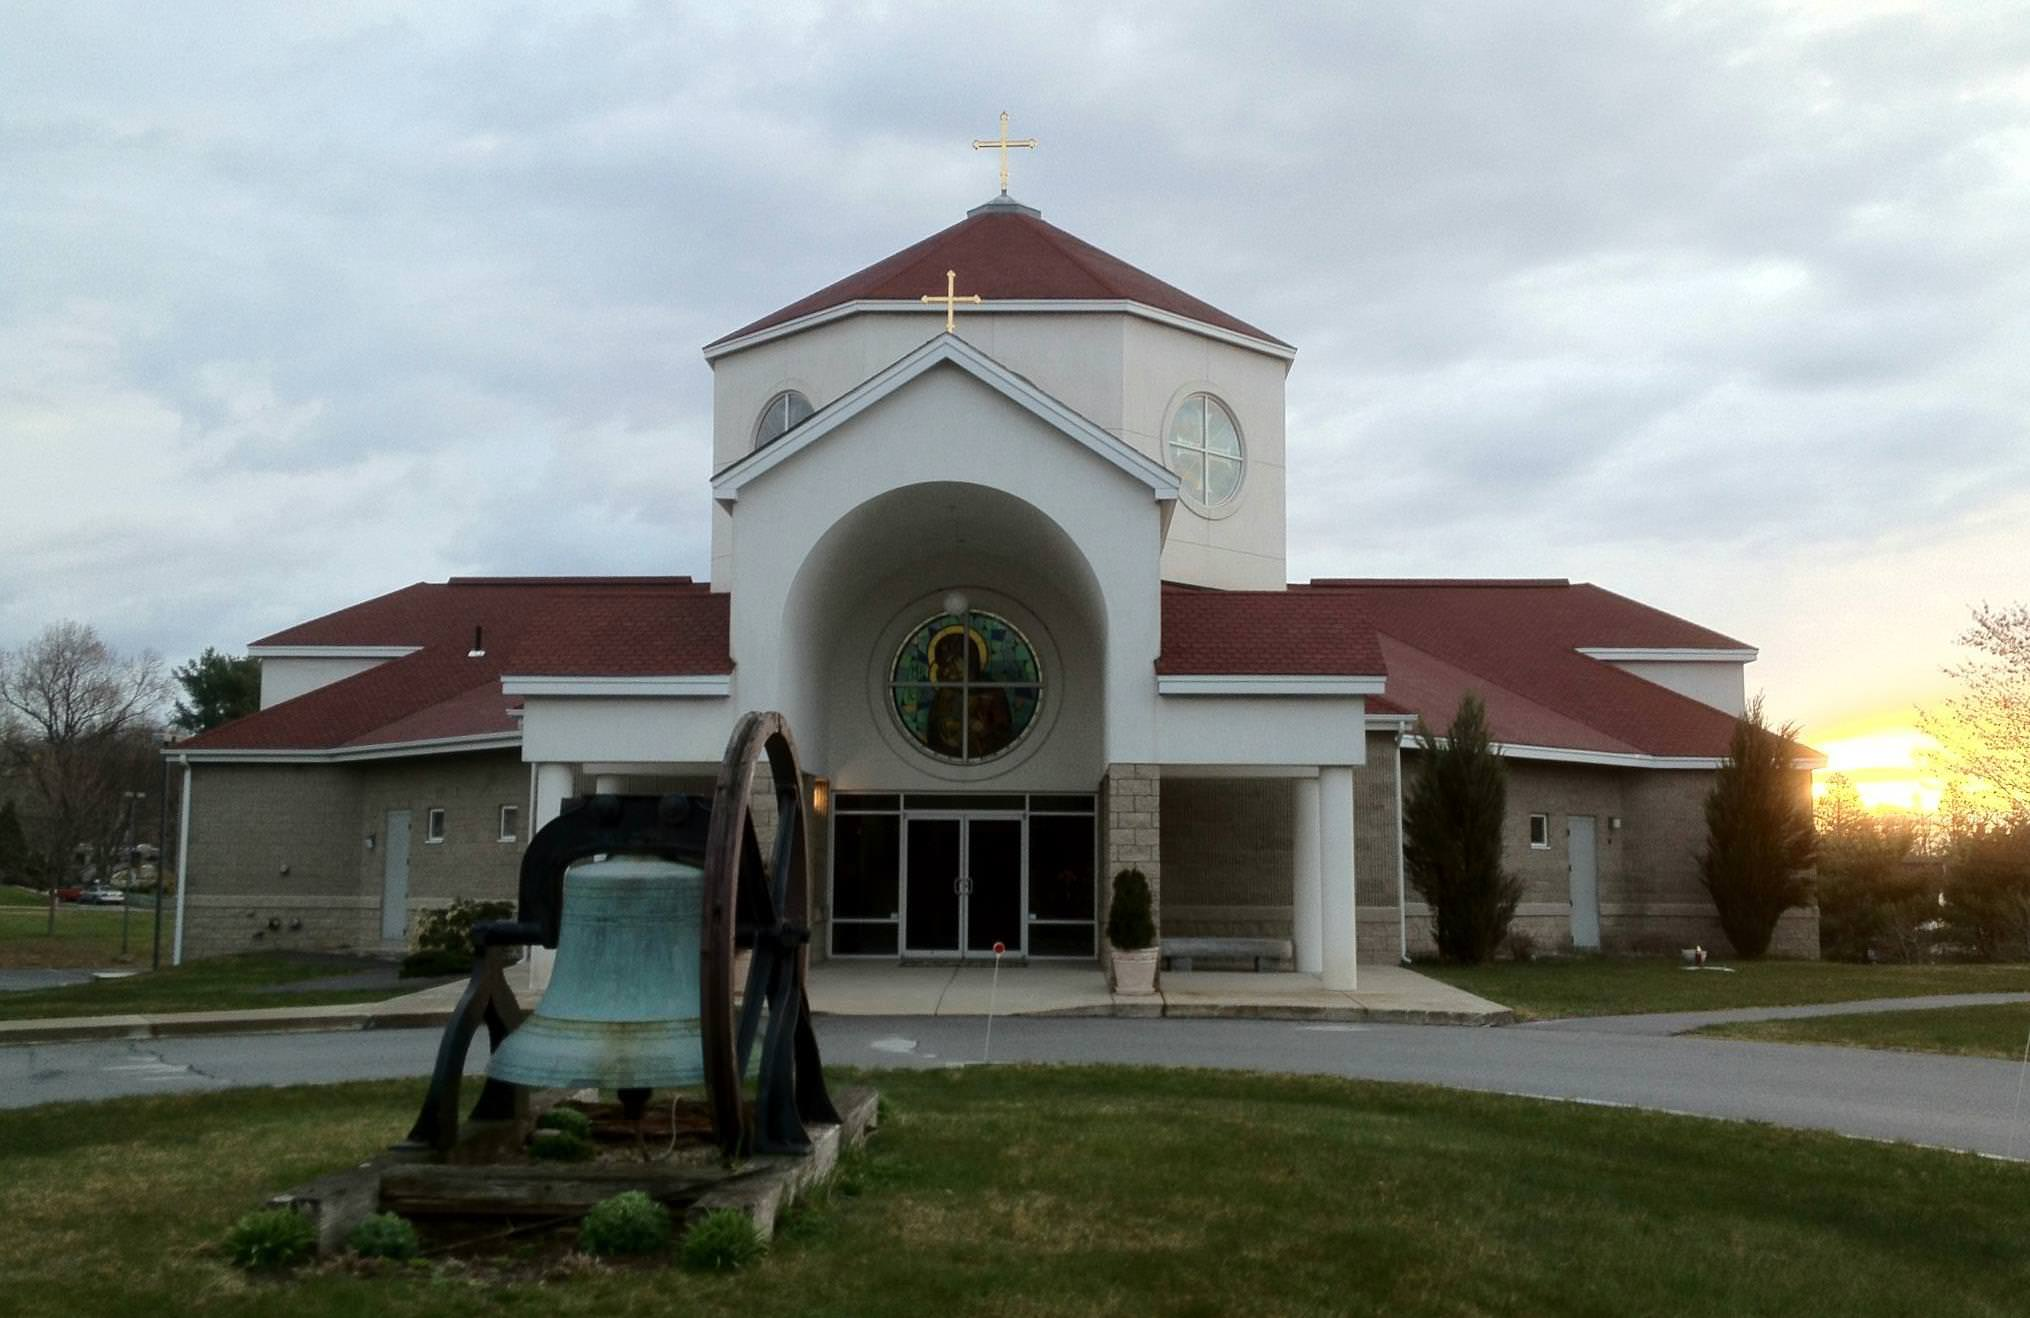 catholic singles in concord Nh new hampshire the following retreats are located new hampshire (nh), usa retreats and conferences may take place in berlin, claremont, concord, franklin, keene.